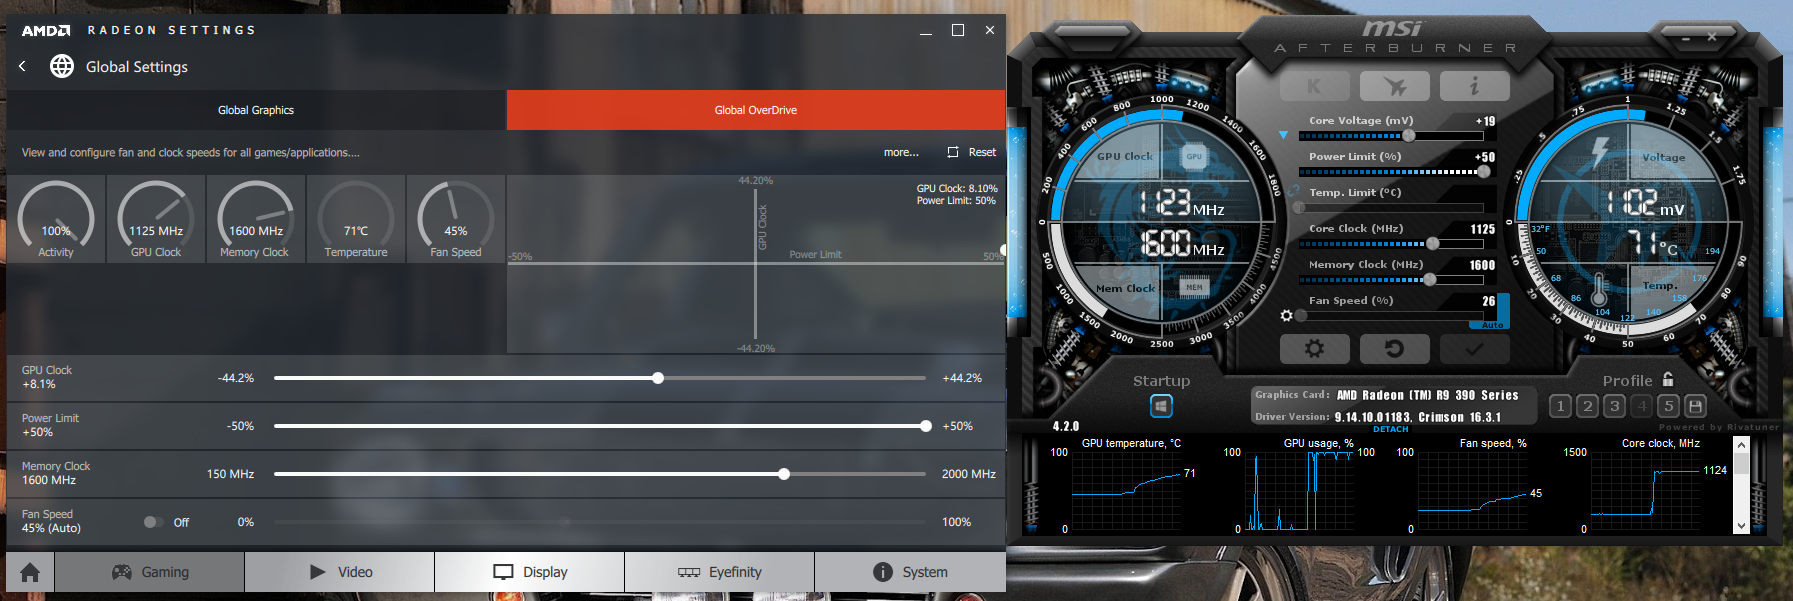 AMD GPU Overclocking Guide, Crimson Drivers, and Discussion